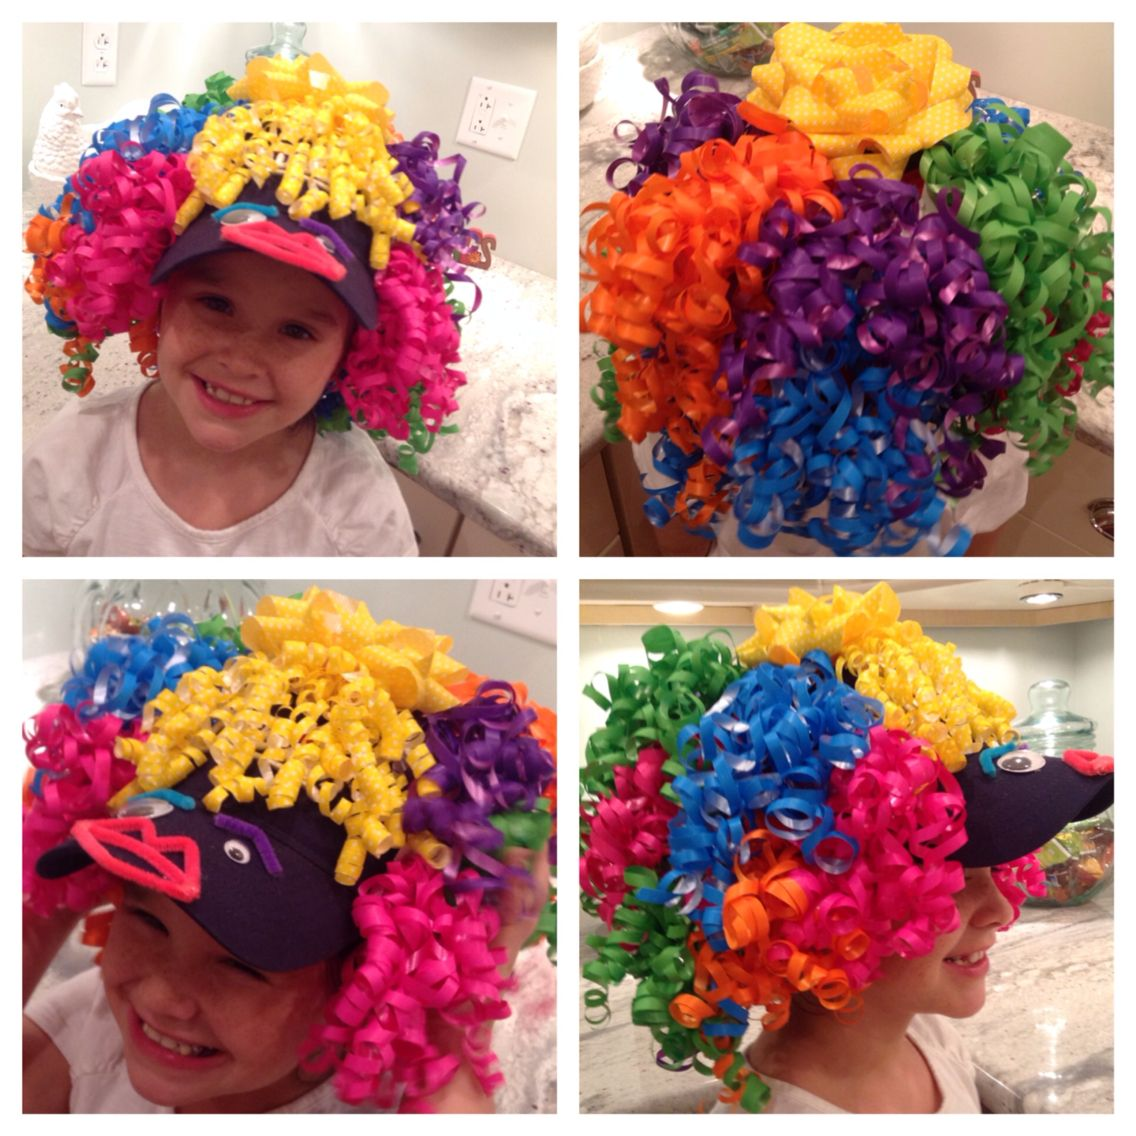 Diy Crazy Hat: Brielle's Crazy Hat Day @ School. Baseball Cap, Hot Glued